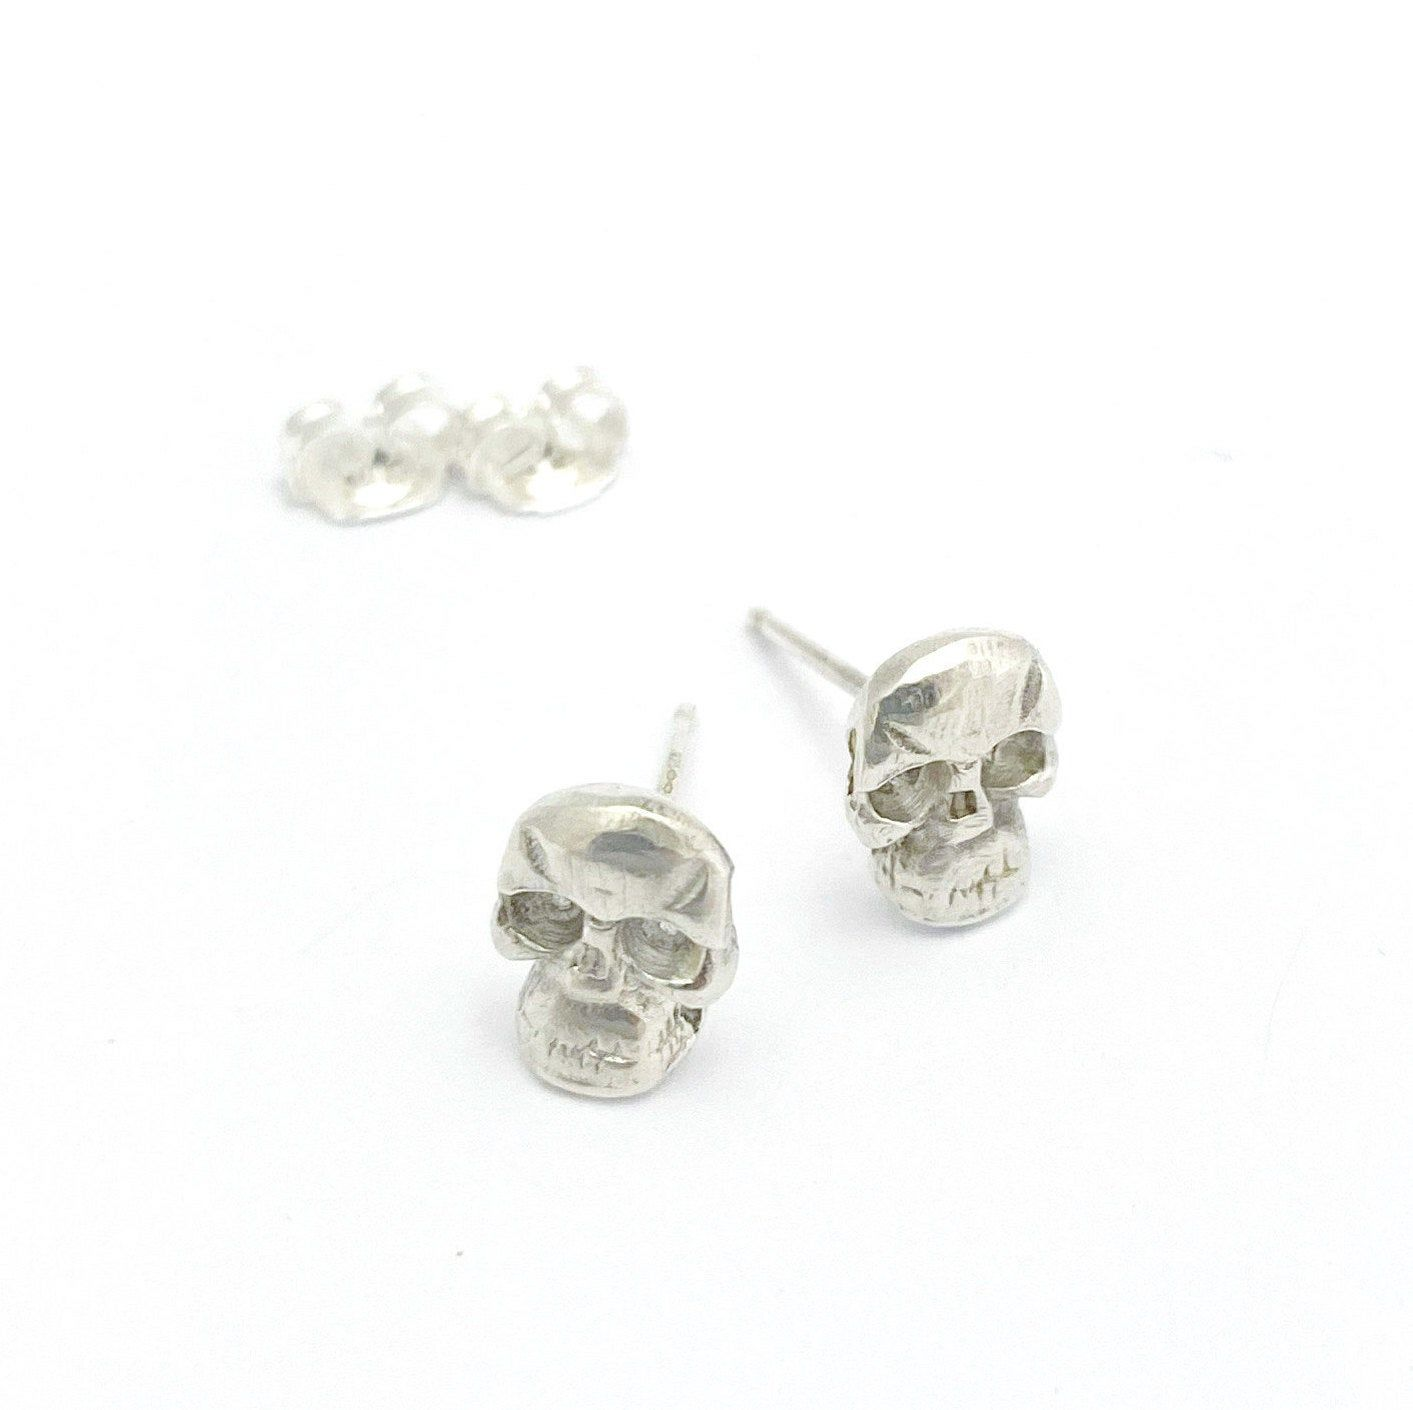 """""""Trendy sterling silver skull jewelry set: Silver skull pendant on a blackened silver layered necklace, and 2 tiny skull studs. This gorgeous set consists of a necklace and earrings: Silver skull pendant hanging from an oxidized chain necklace, and 2 matching skull stud earrings. It will look chic with your little black dress or with your favorite jeans and t-shirt. You can wear on its own for a light gothic look or through in other jewelry to get a total boho-chic vibe. Add this set to your col"""